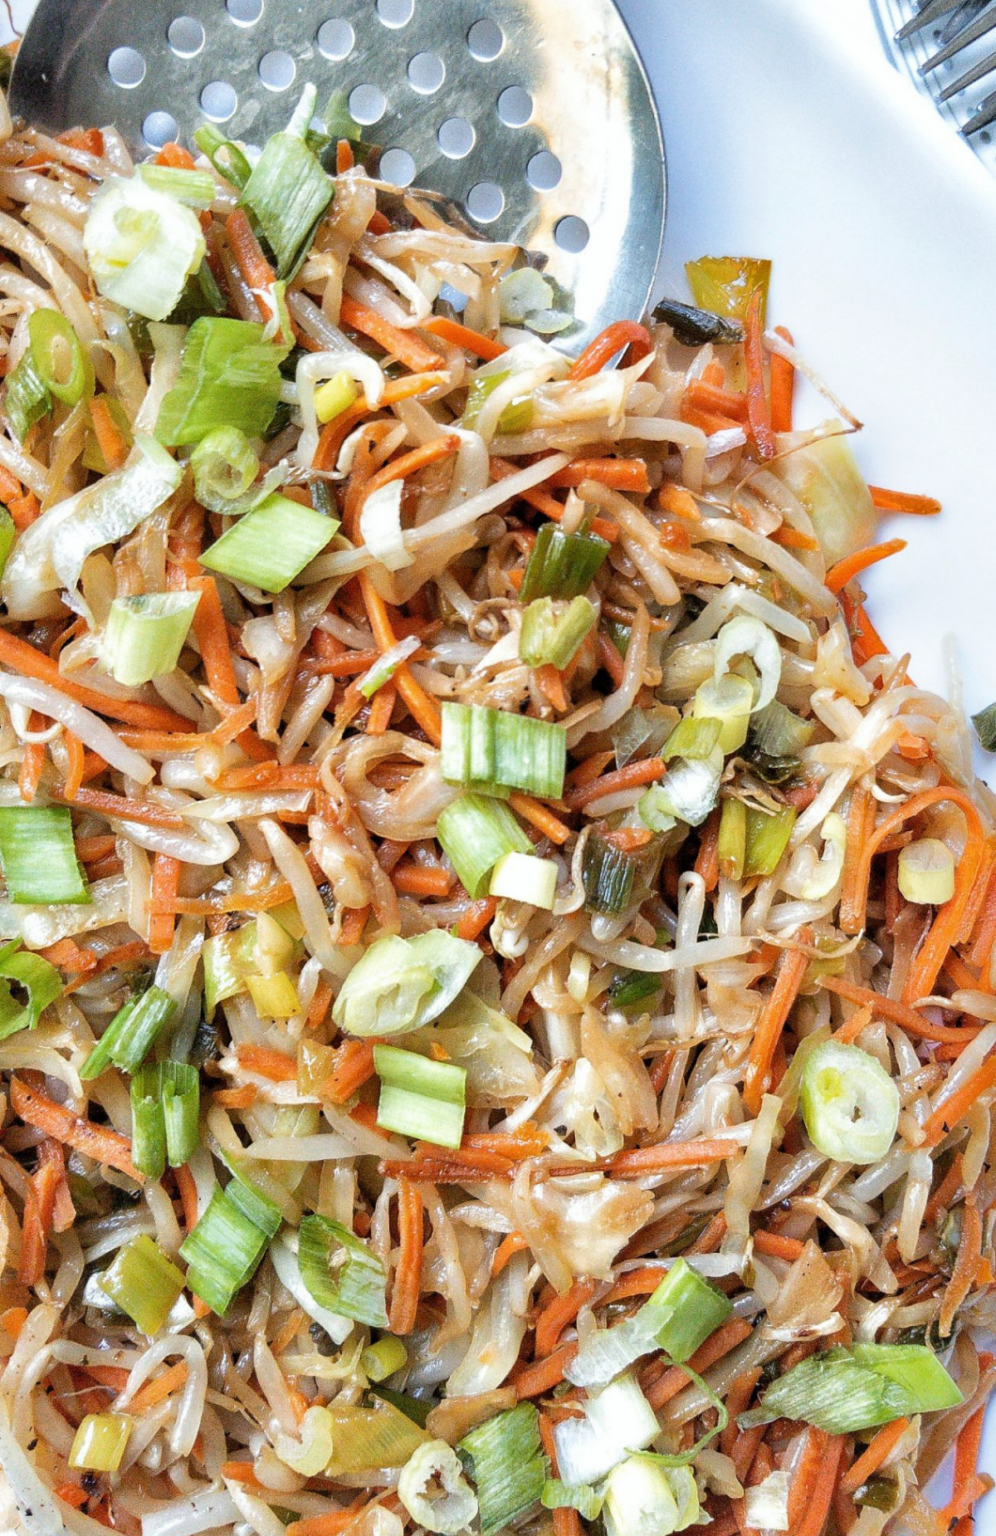 Mung bean sprouts with vegetables on a platter.